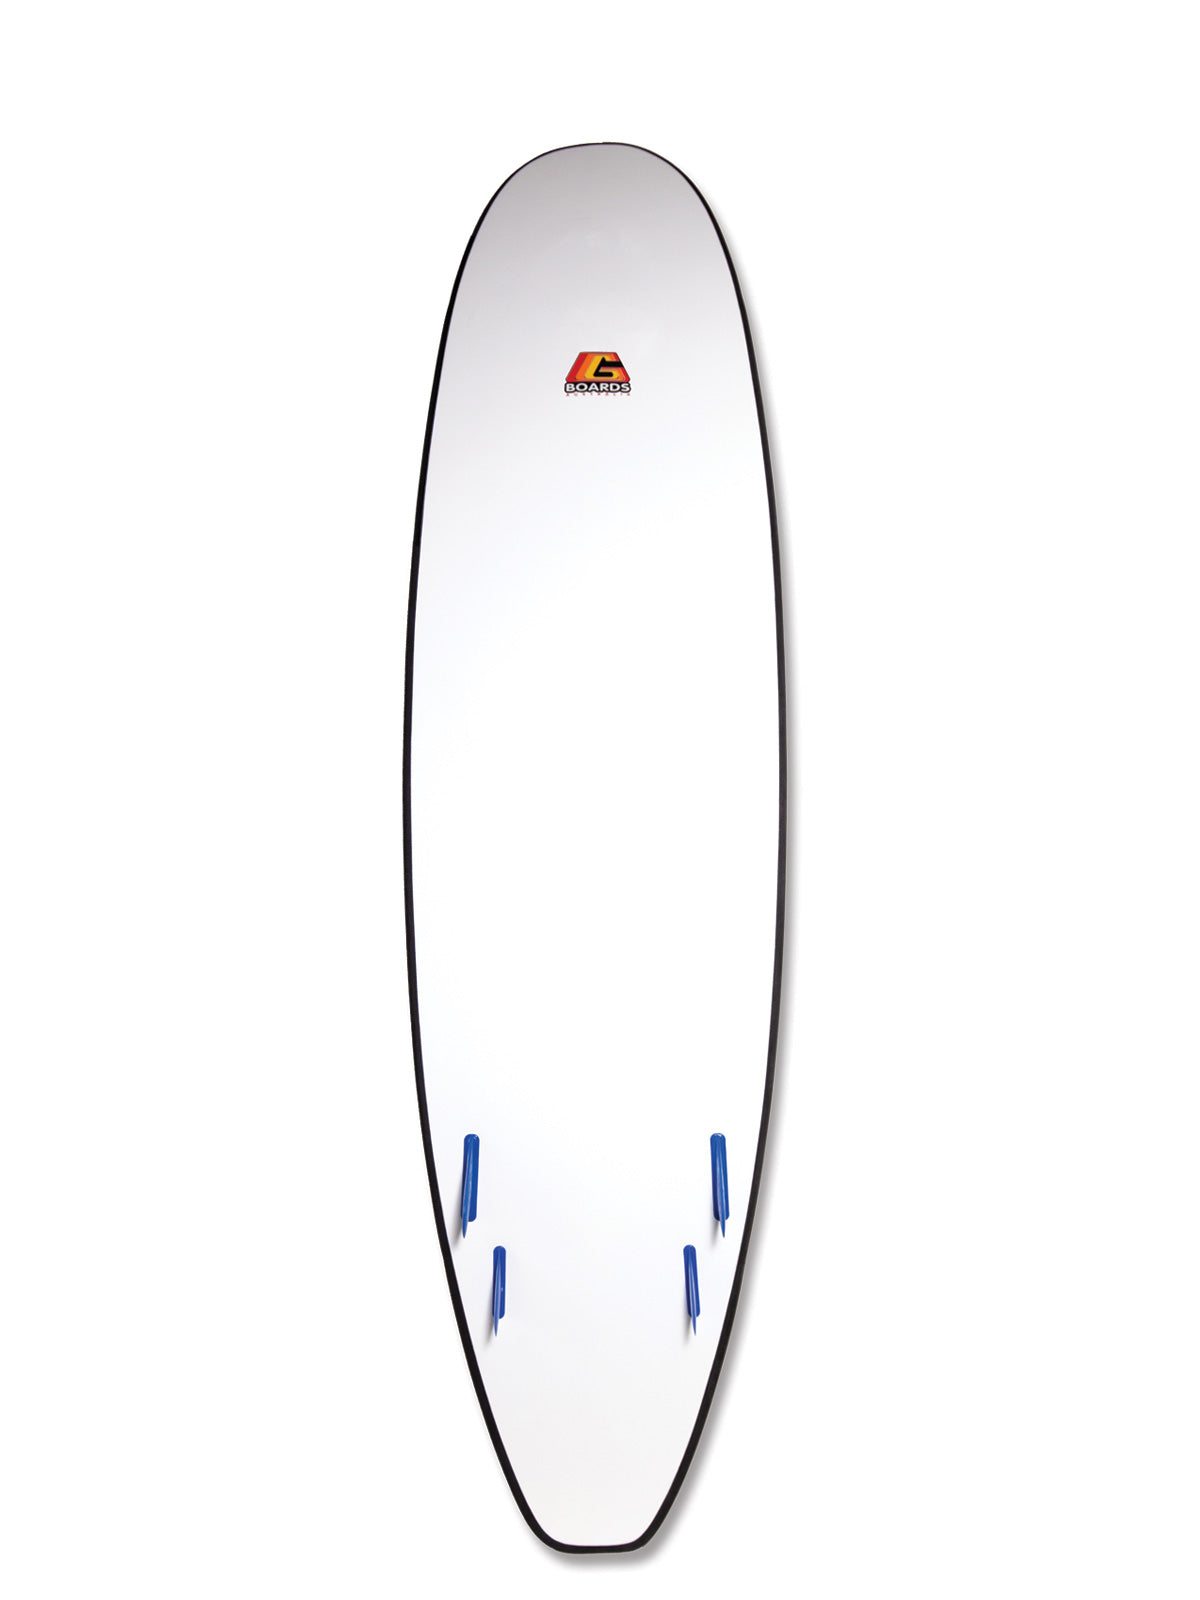 STAND UP PADDLEBOARD 9'6